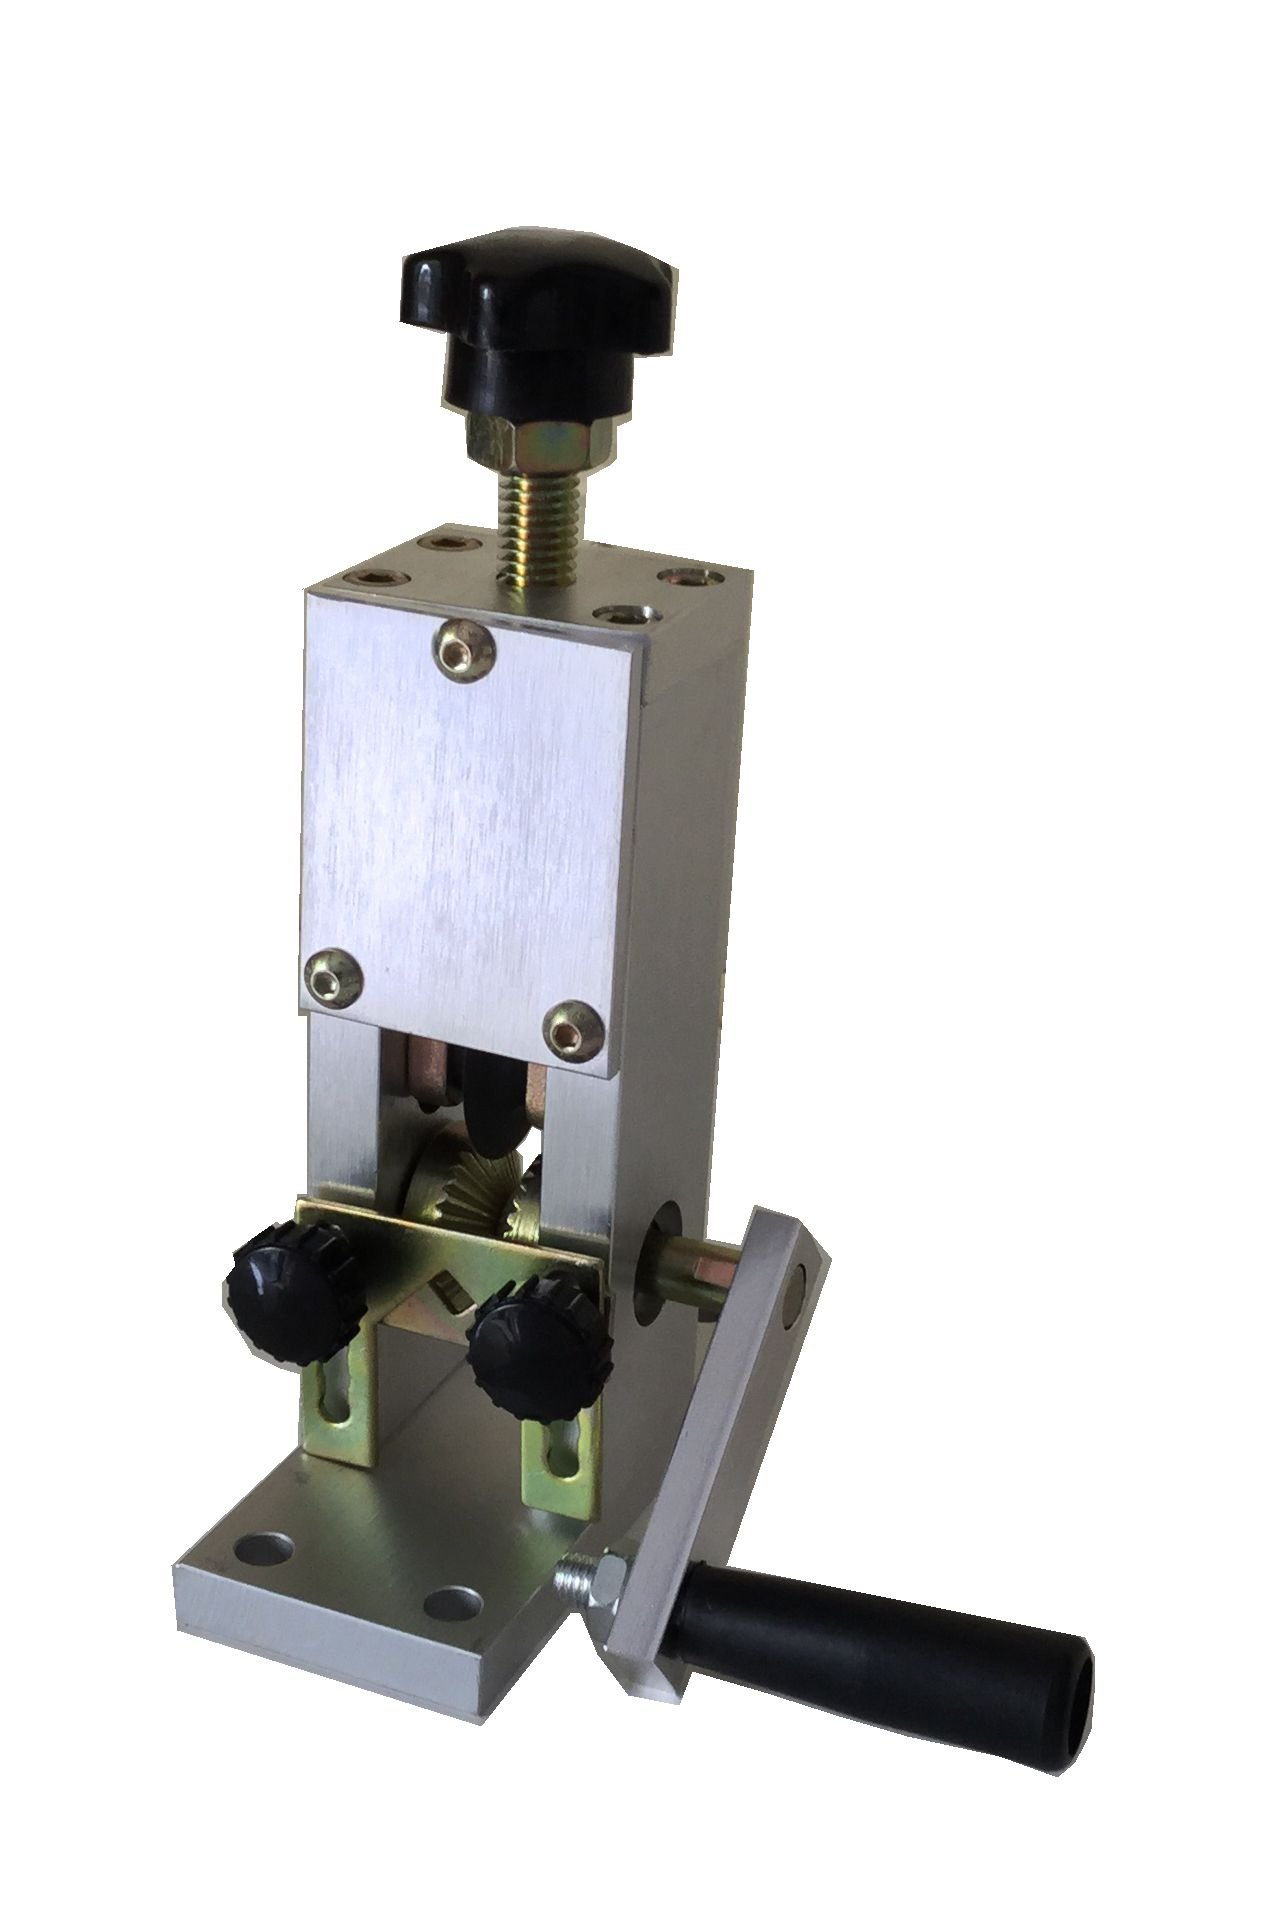 Drill Operated Copper Wire Stripper, for Both Hand Crank and Drill Operated